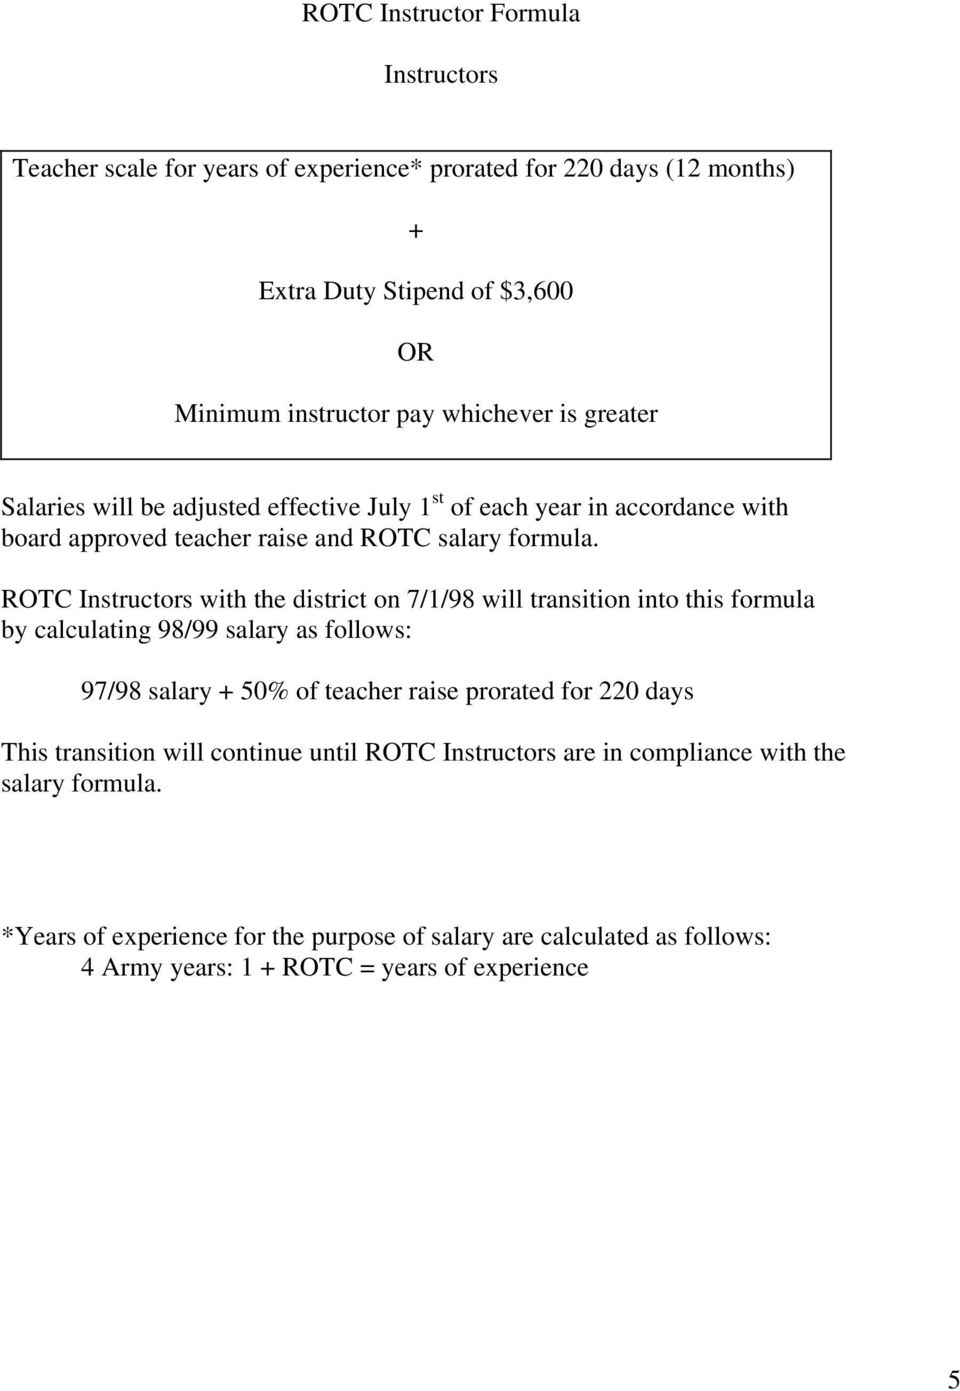 ROTC Instructors with the district on 7/1/98 will transition into this formula by calculating 98/99 salary as follows: 97/98 salary + 50% of teacher raise prorated for 220 days